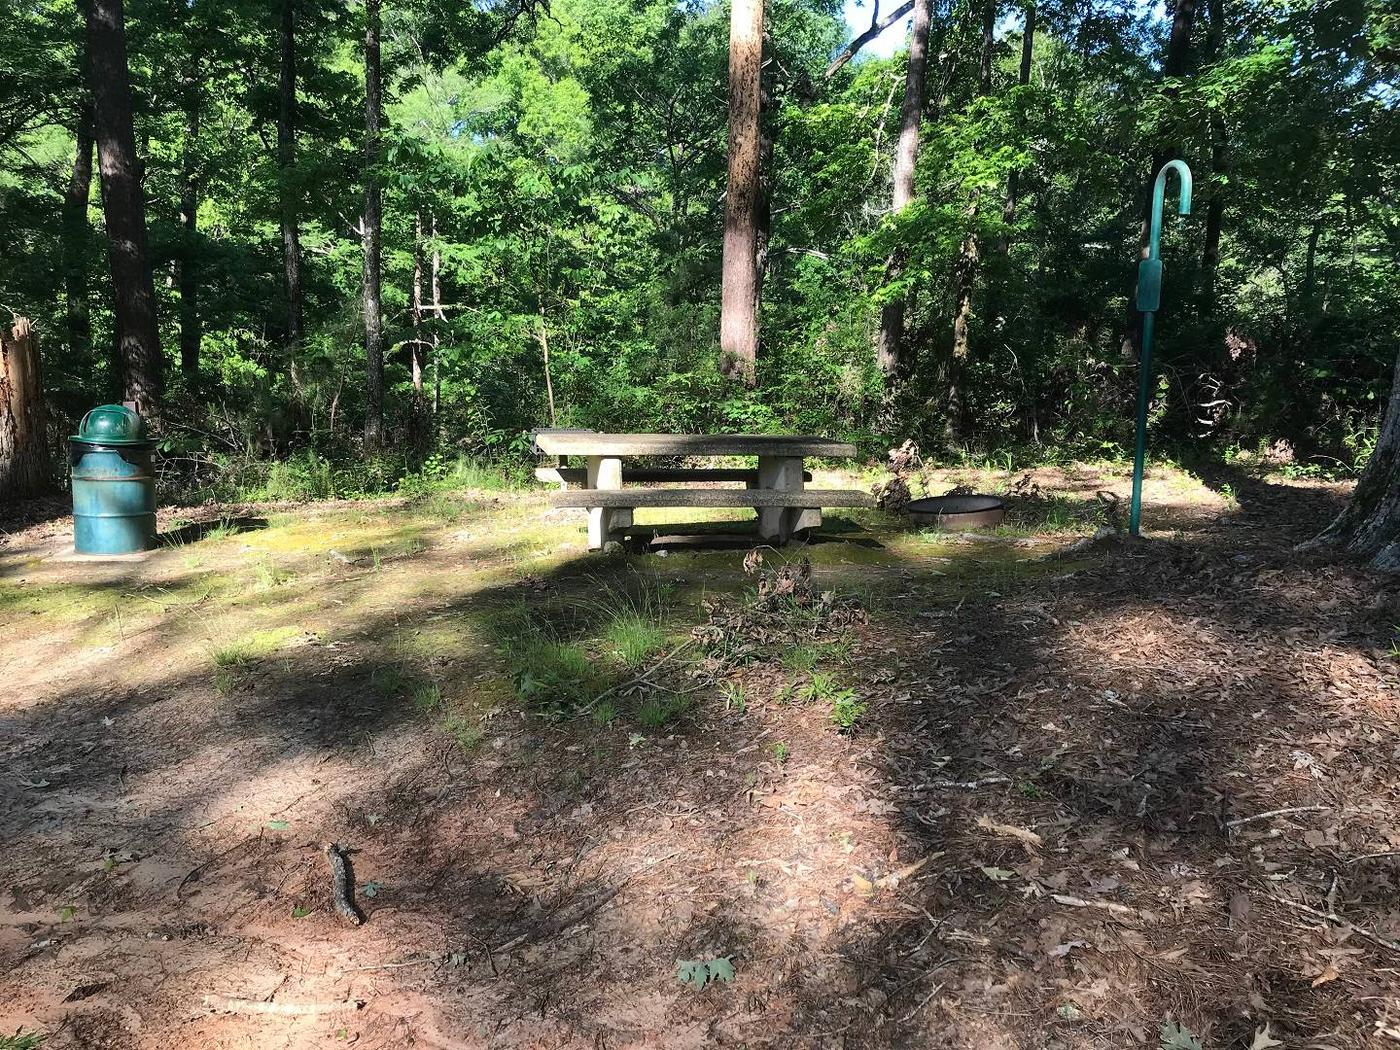 Campsite #9.Campsite #9. Tent site with the following amenities: fire-pit, grill, picnic table, lantern pole, trash can.  Located along bayou.